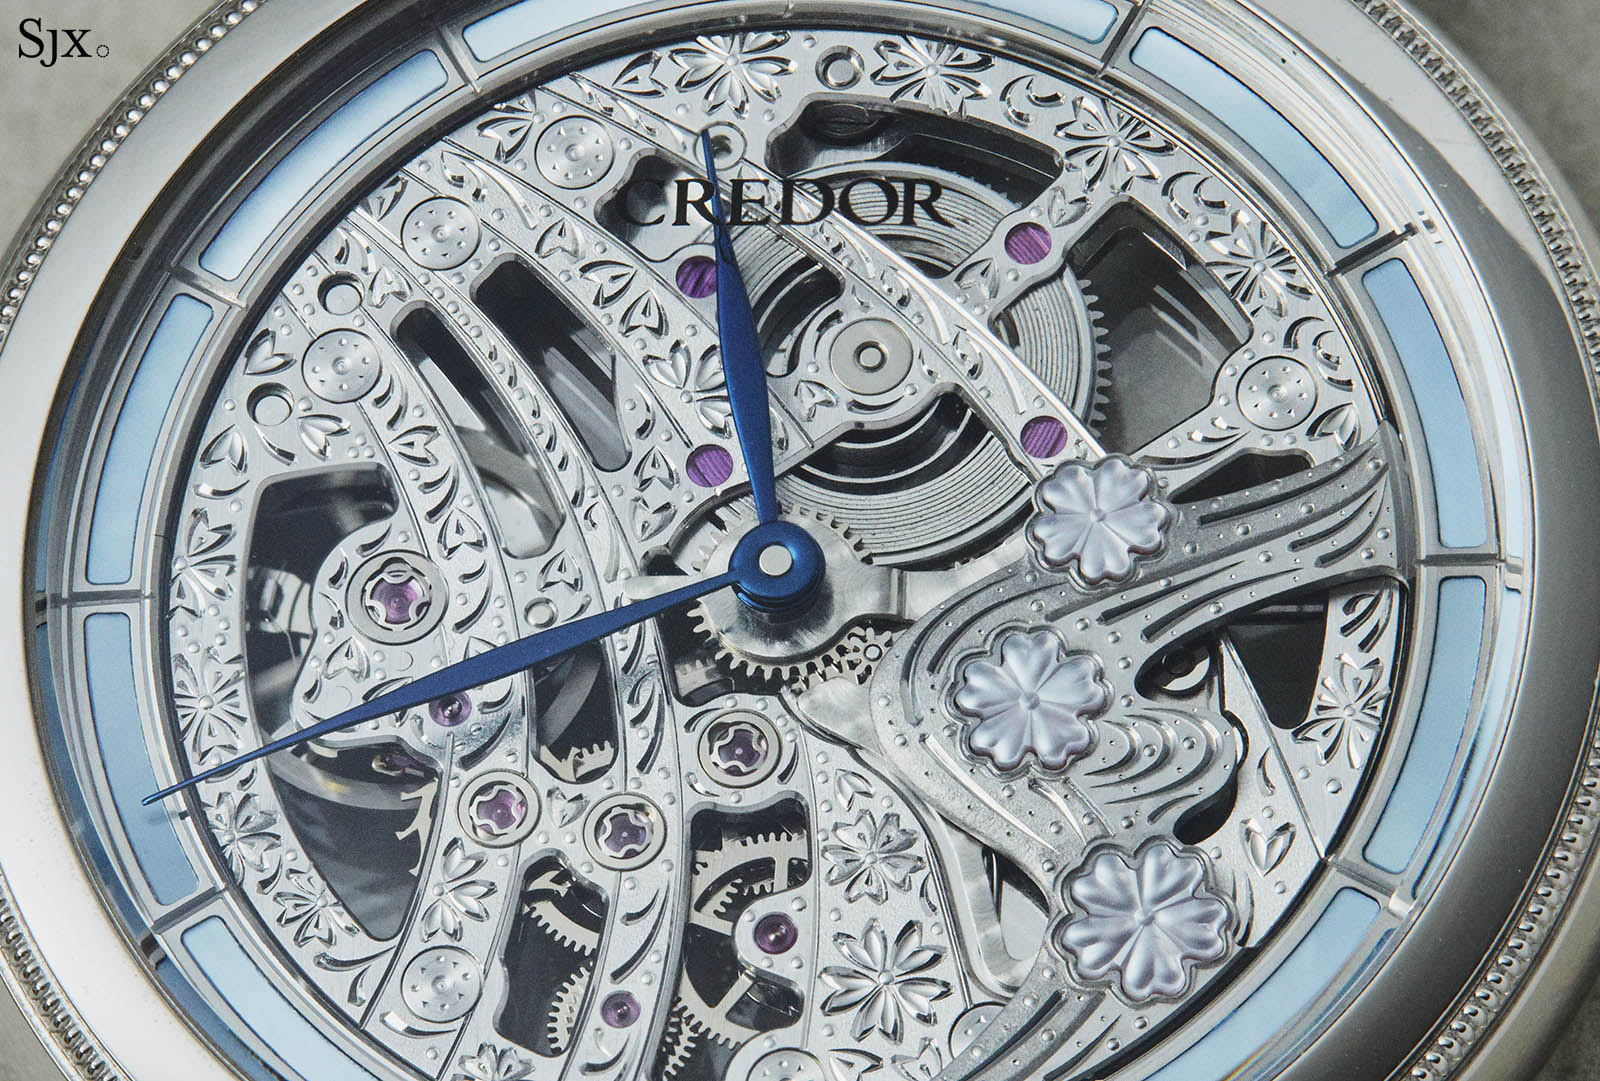 Credor 40th Anniversary Signo Cherry Blossoms Skeleton 1